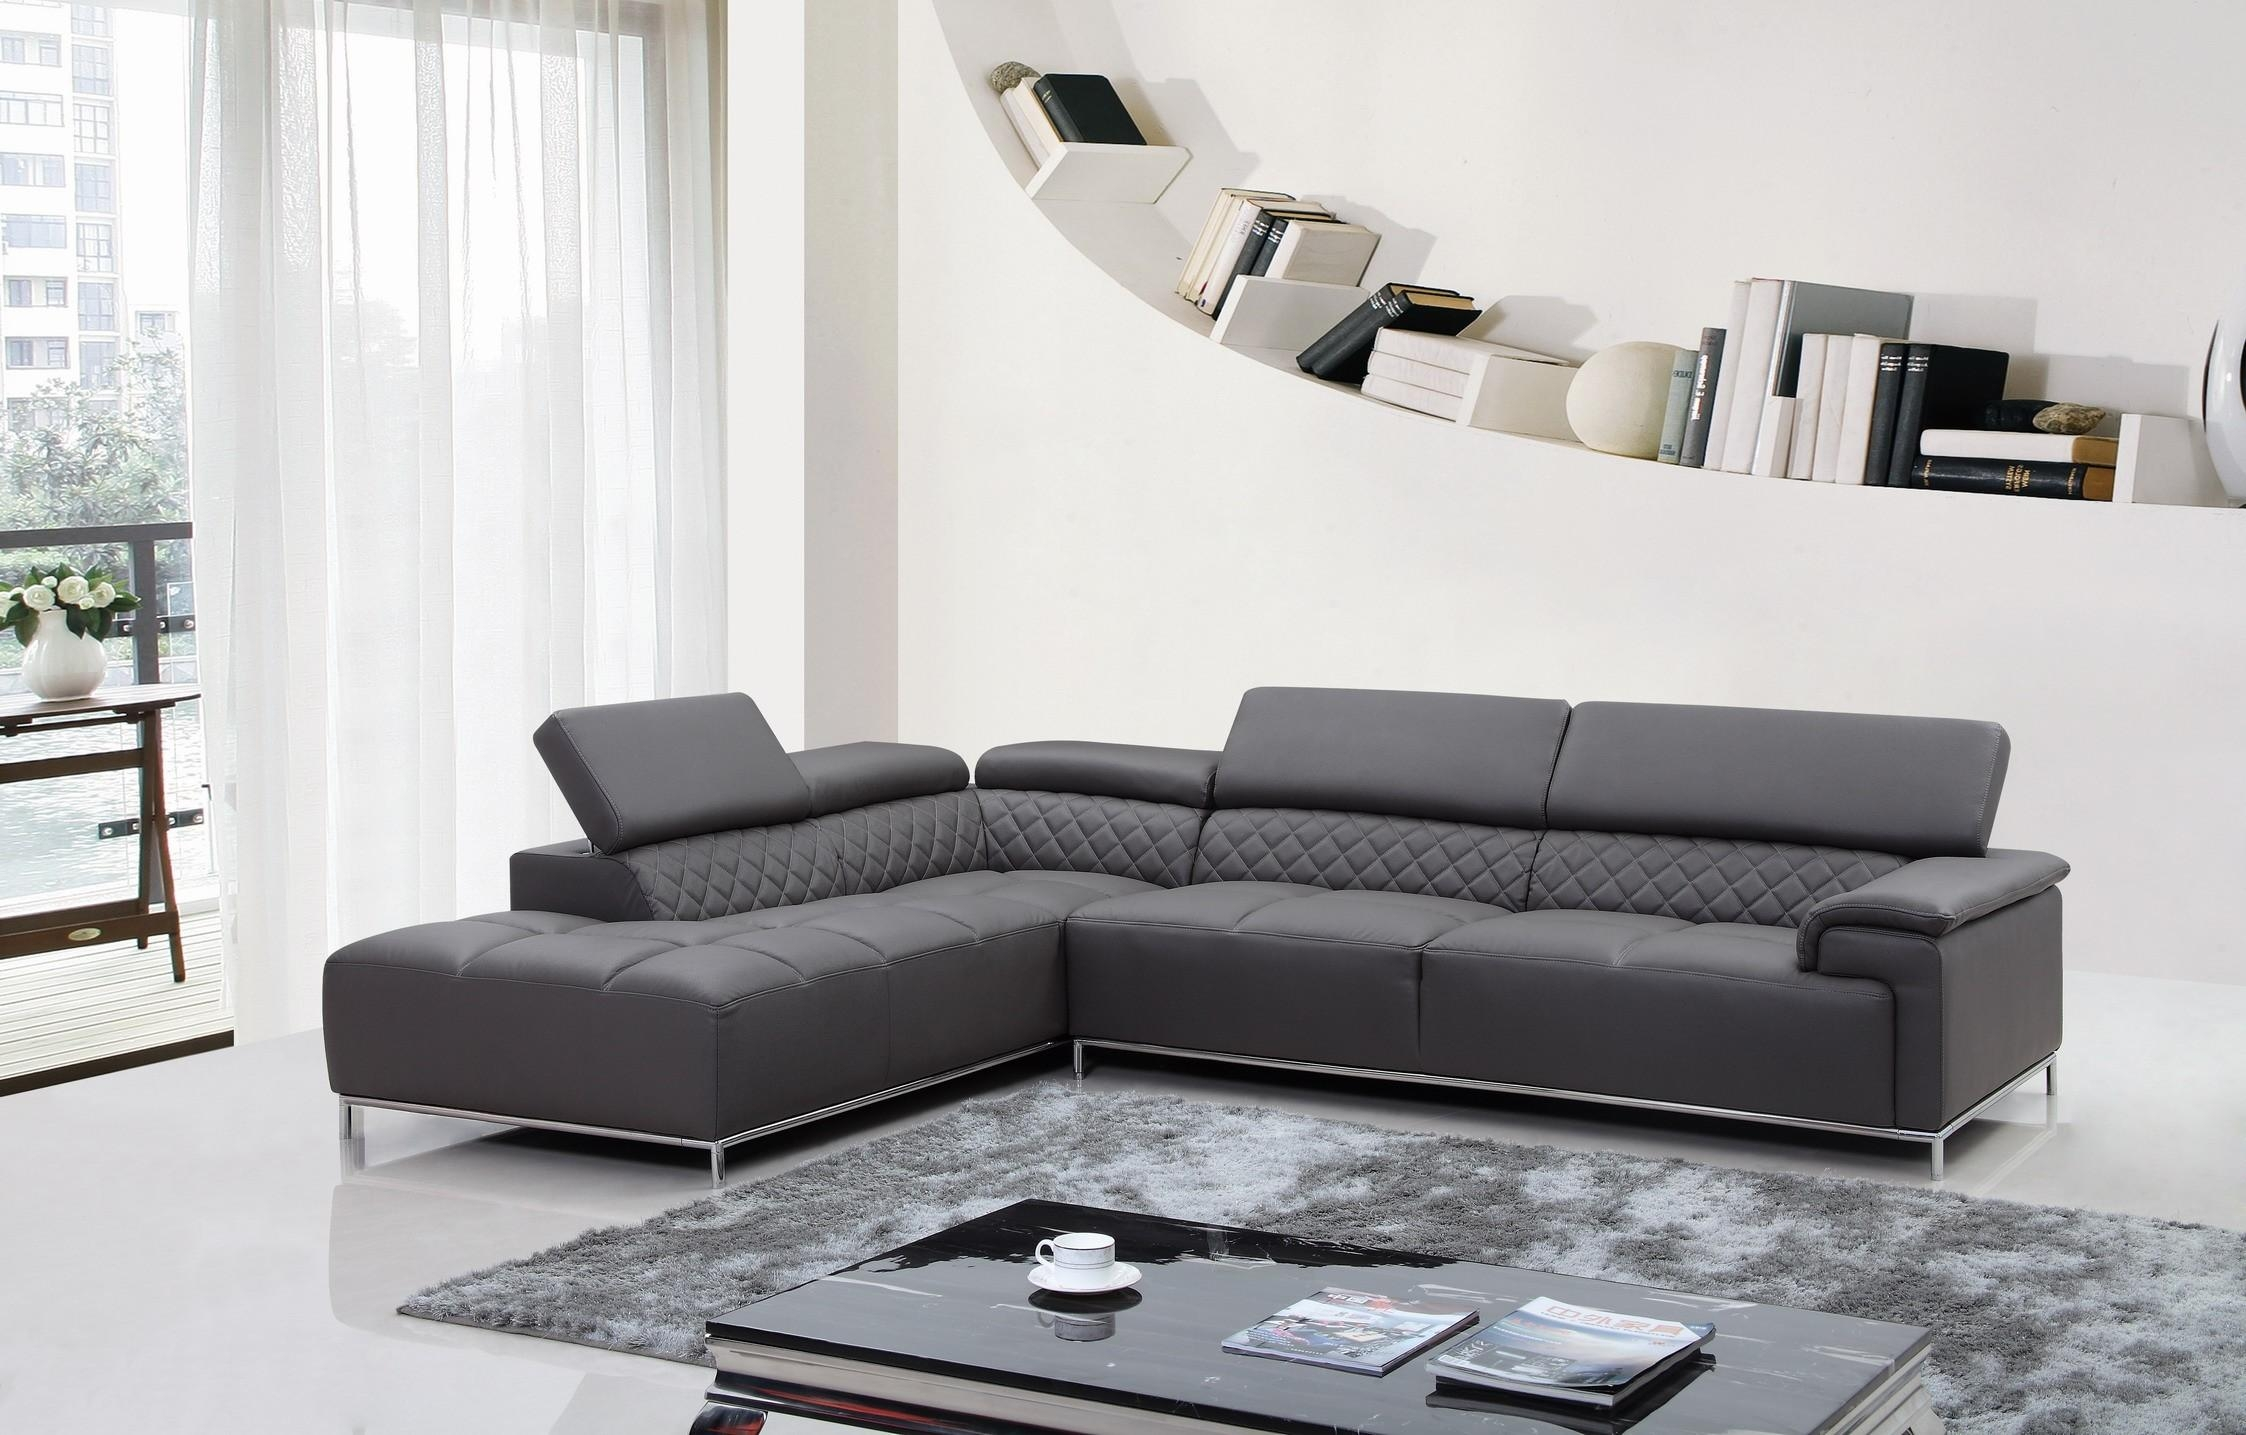 Sofas : Awesome Contemporary Leather Sofa Navy Blue Sectional With Regard To Modern Sofas Sectionals (View 19 of 21)